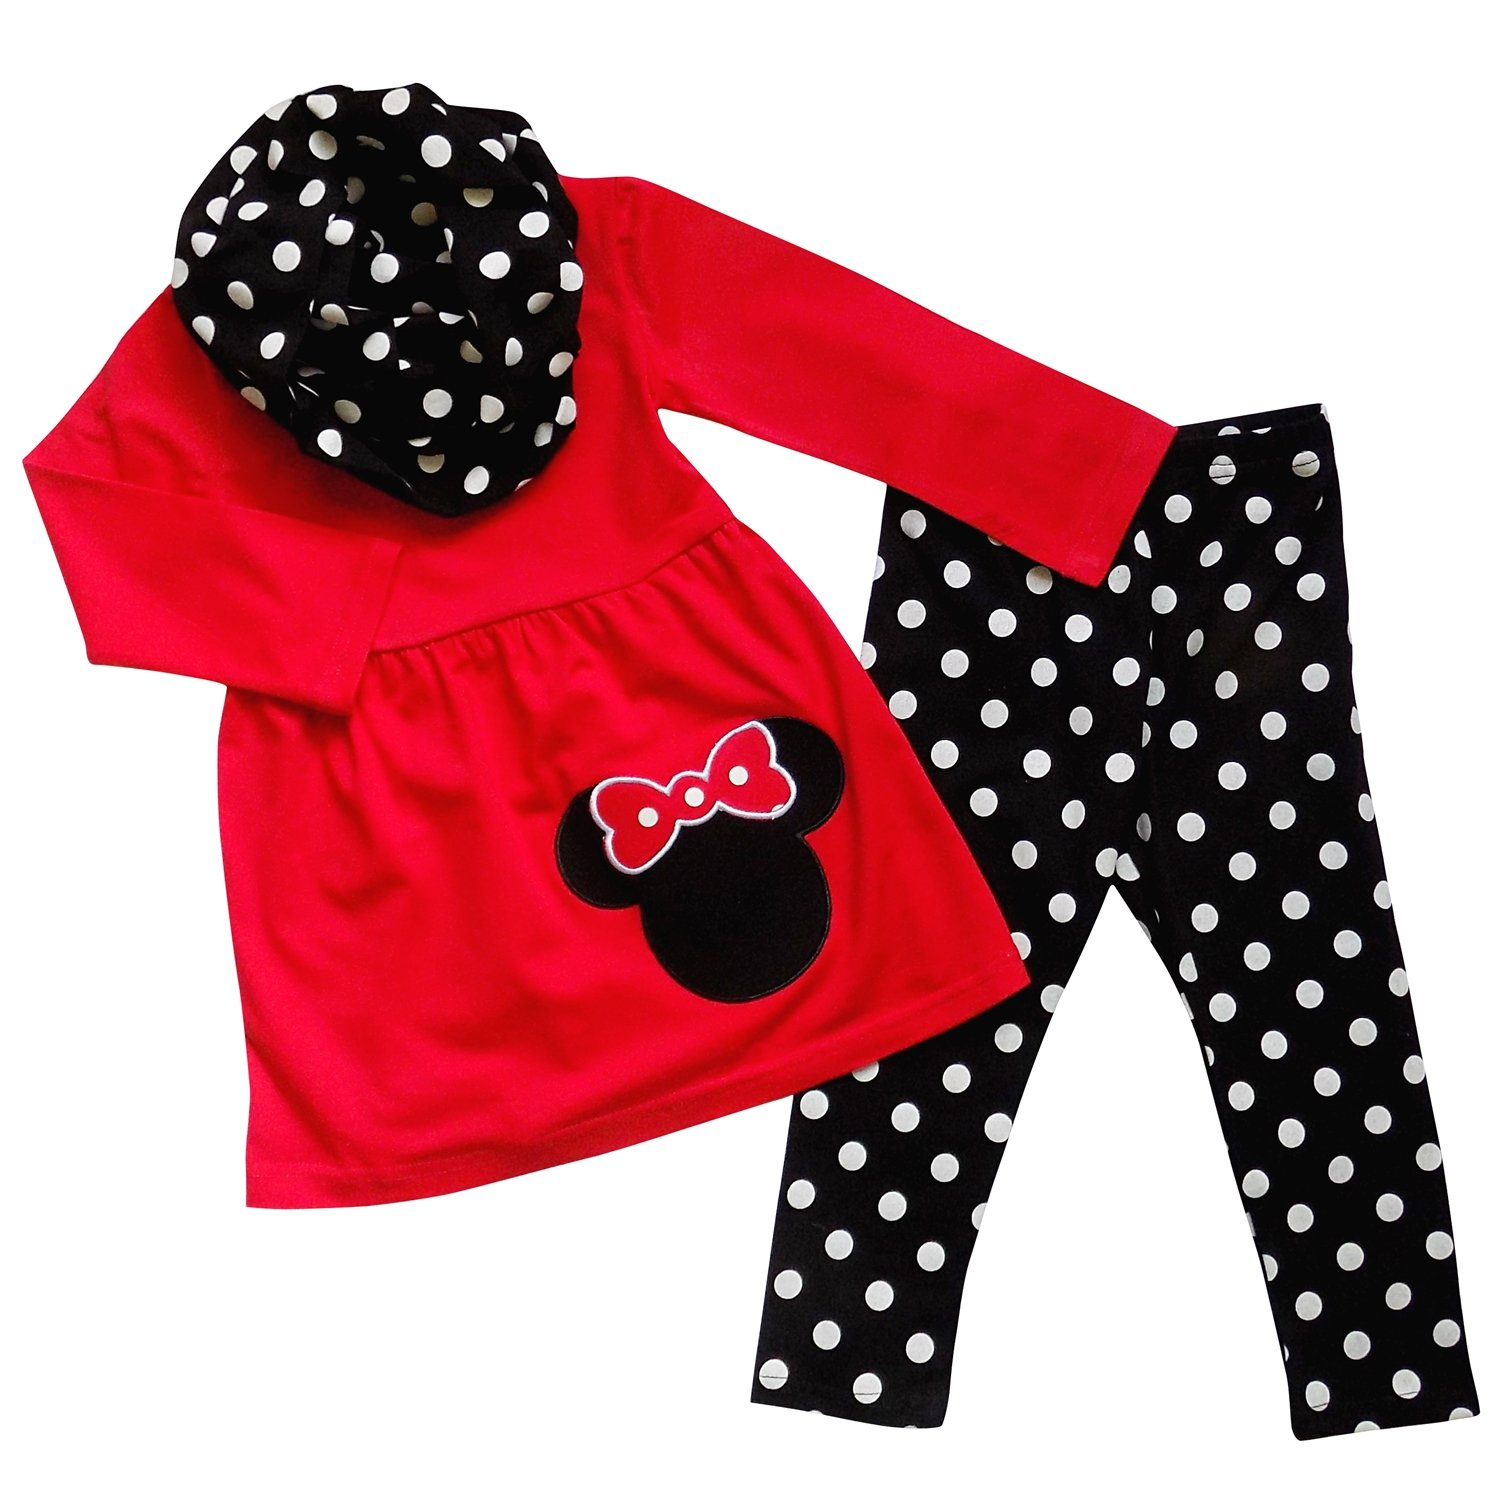 images of minnie mouse outfits gendiswallpapercom